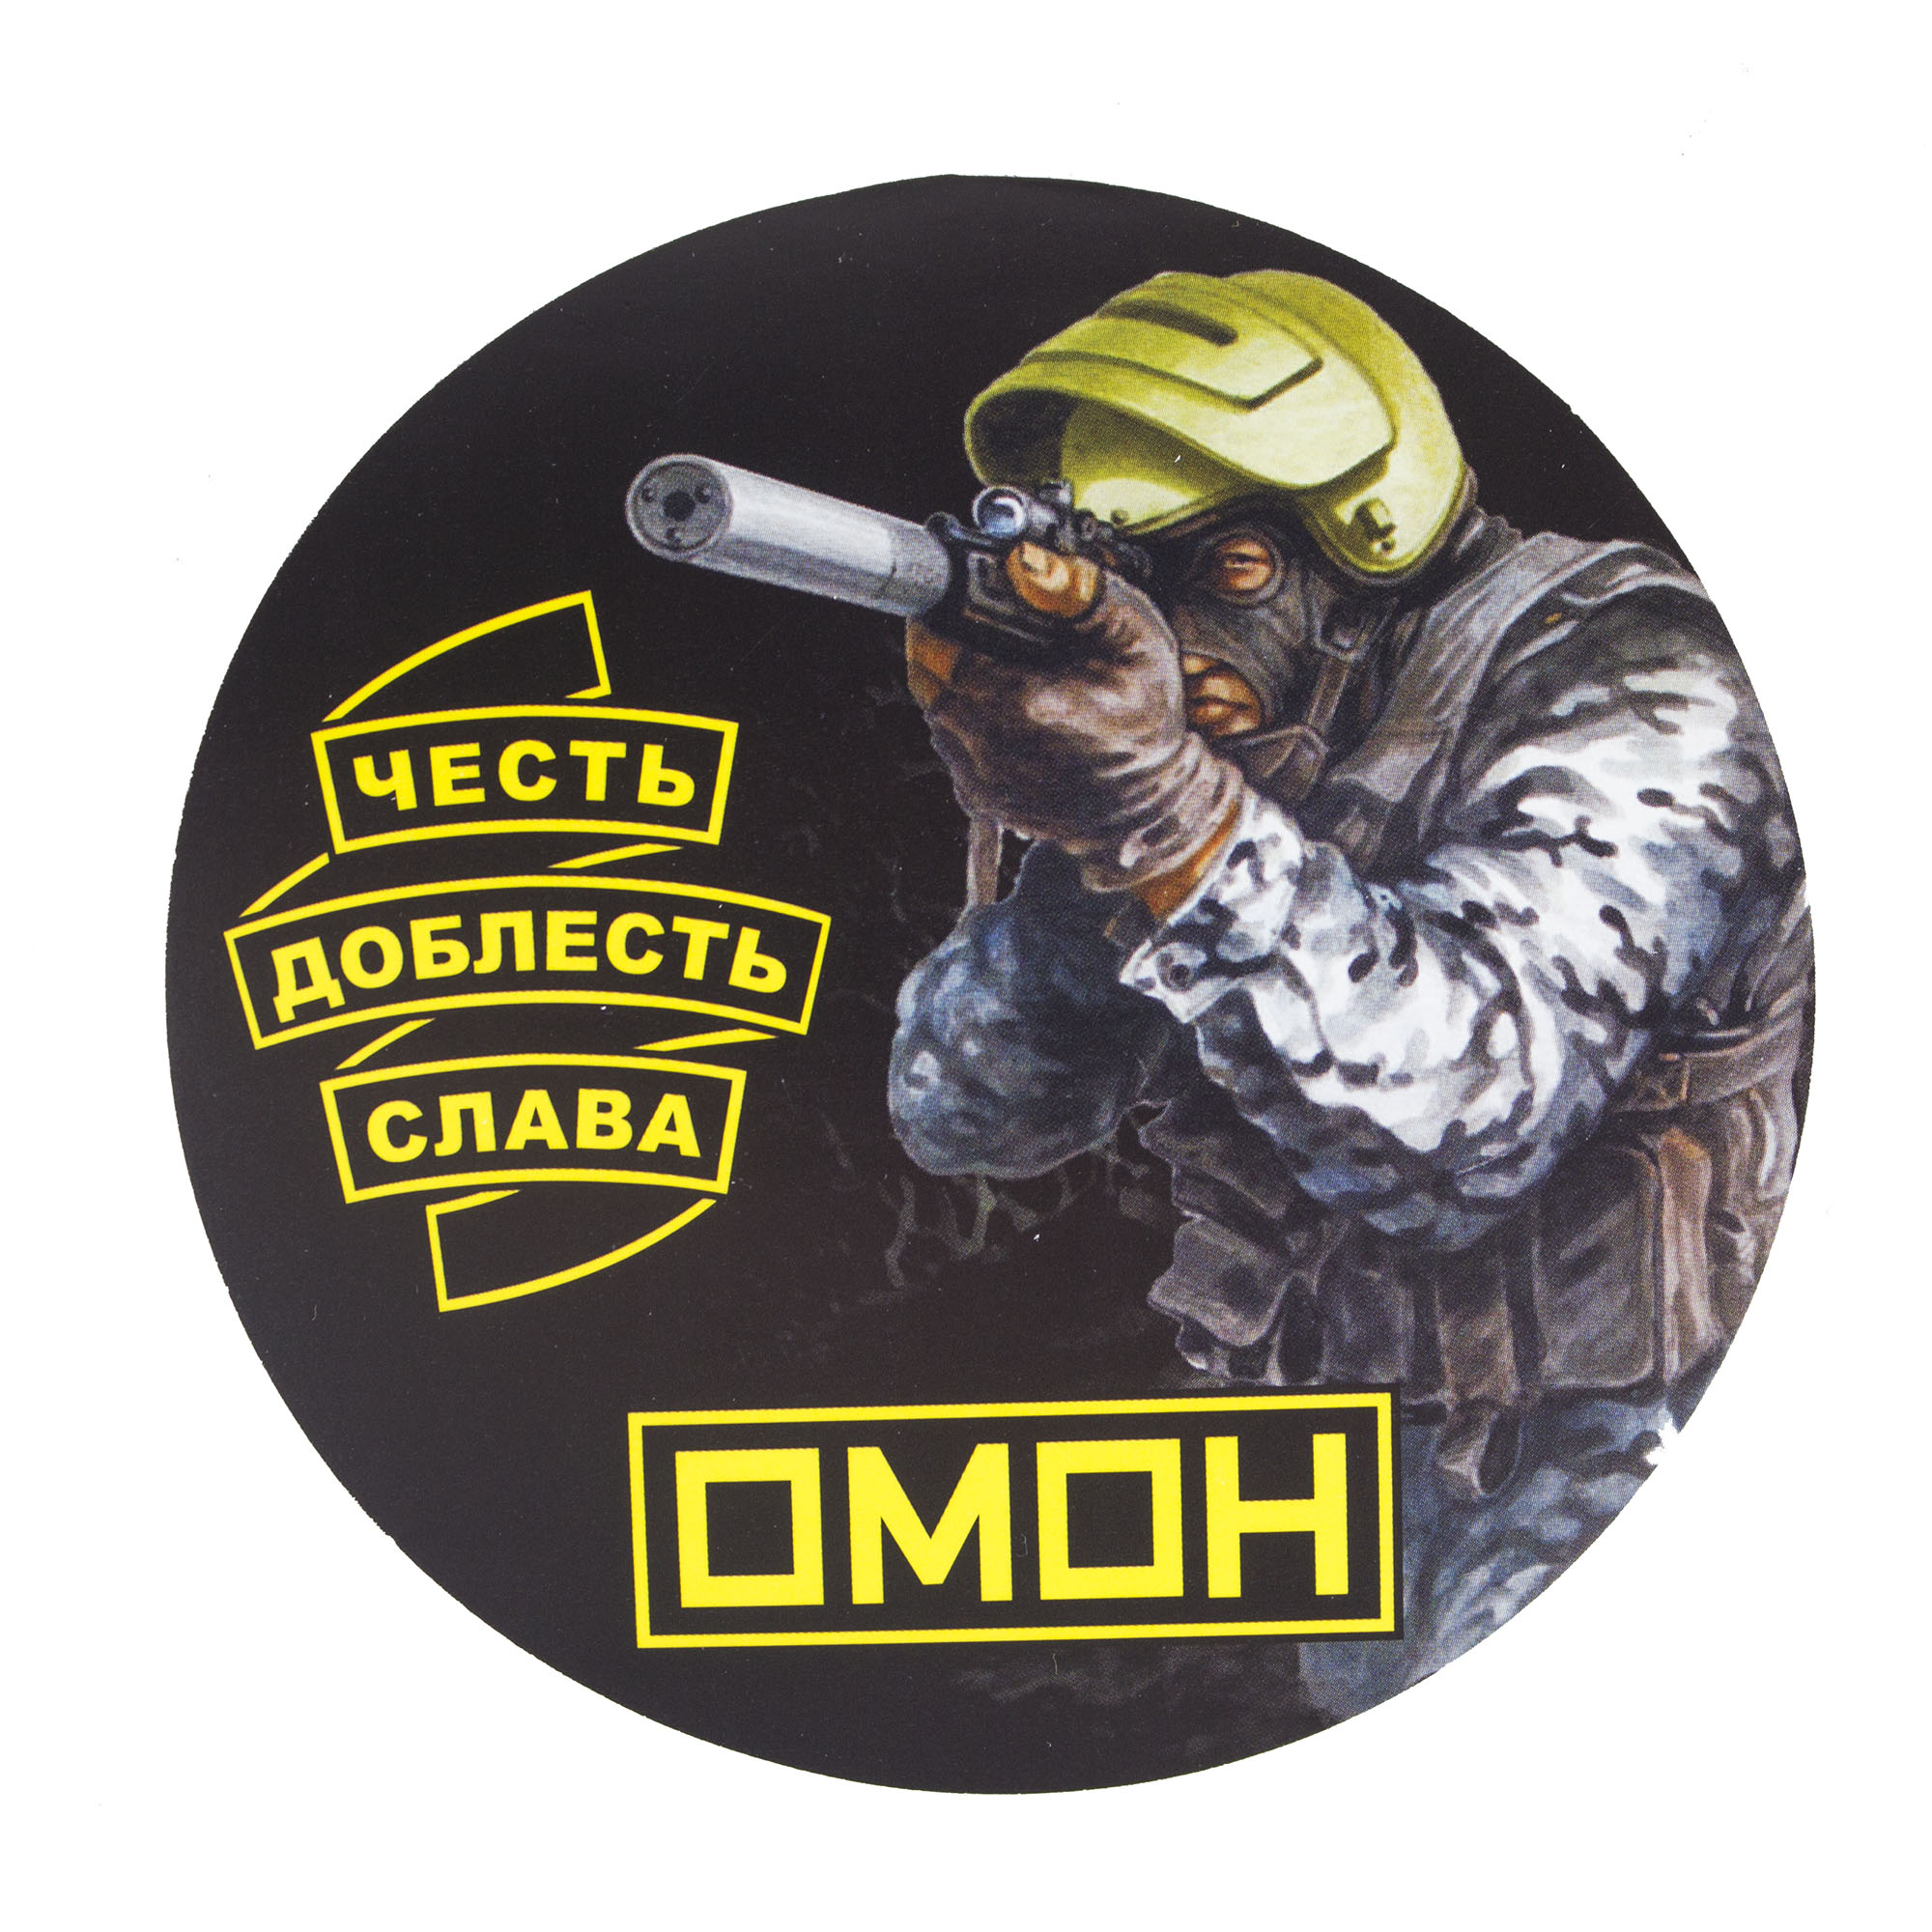 OMON - fighter sticker